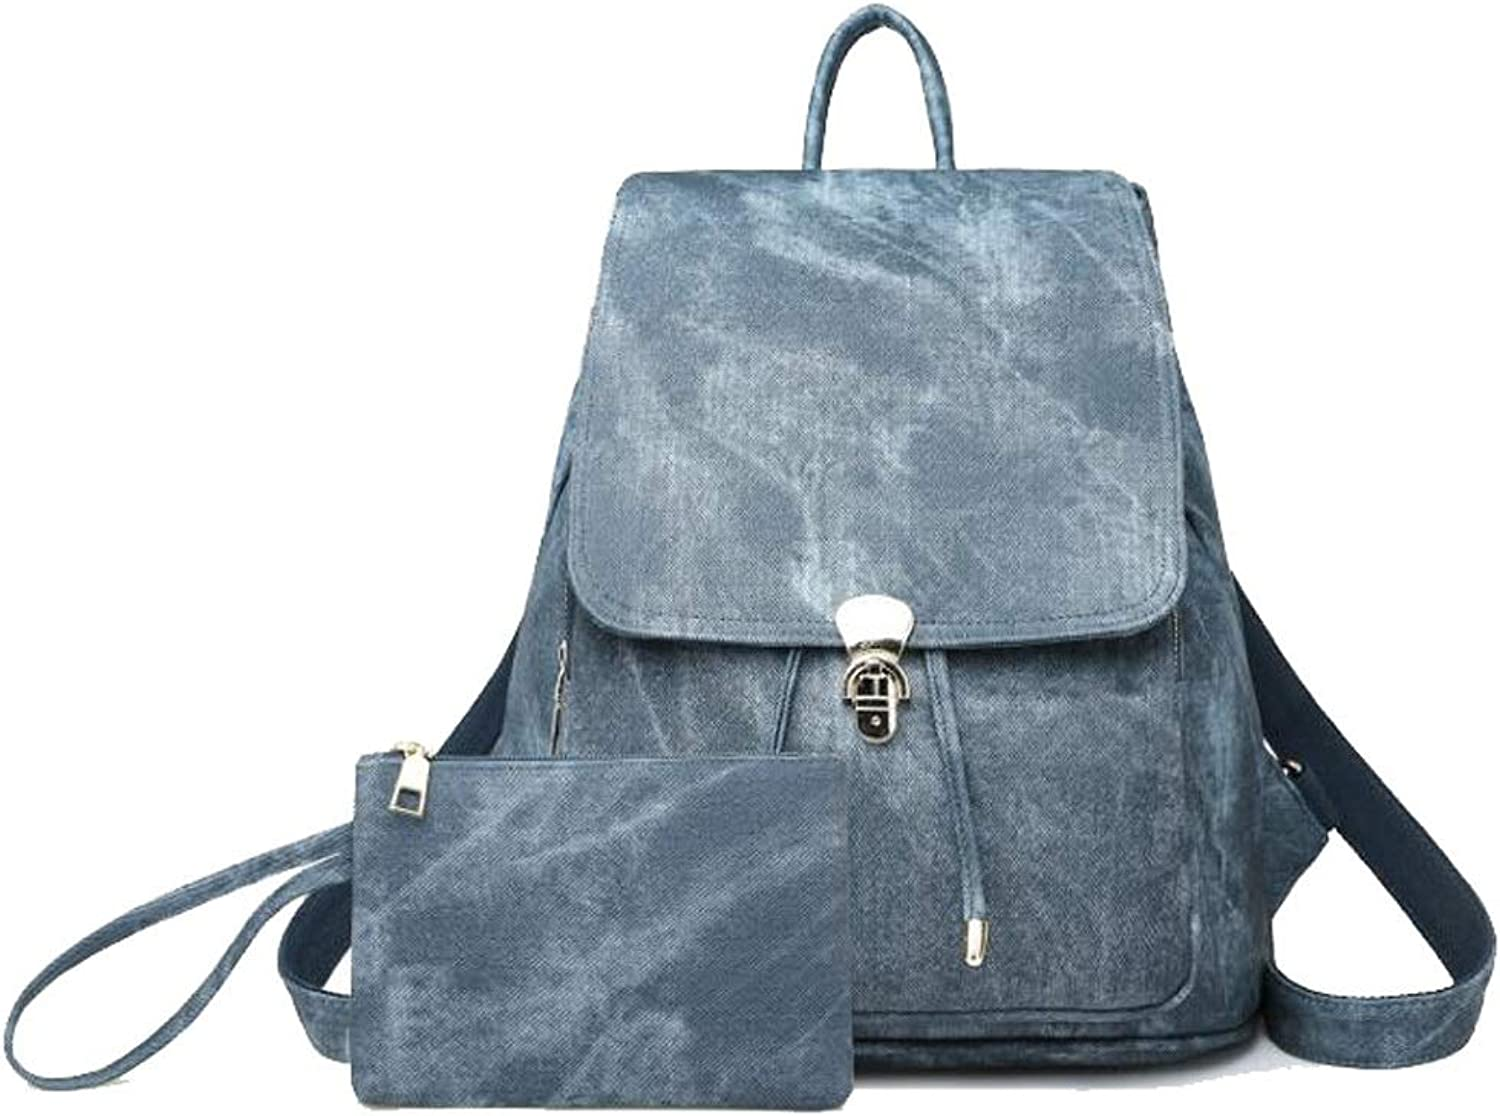 Women Backpack Purse Rucksack Lightweight Lady School Shoulder PU Leather Tote Bag Casual Daypacks (color   blueee, Size   27  20  33cm)